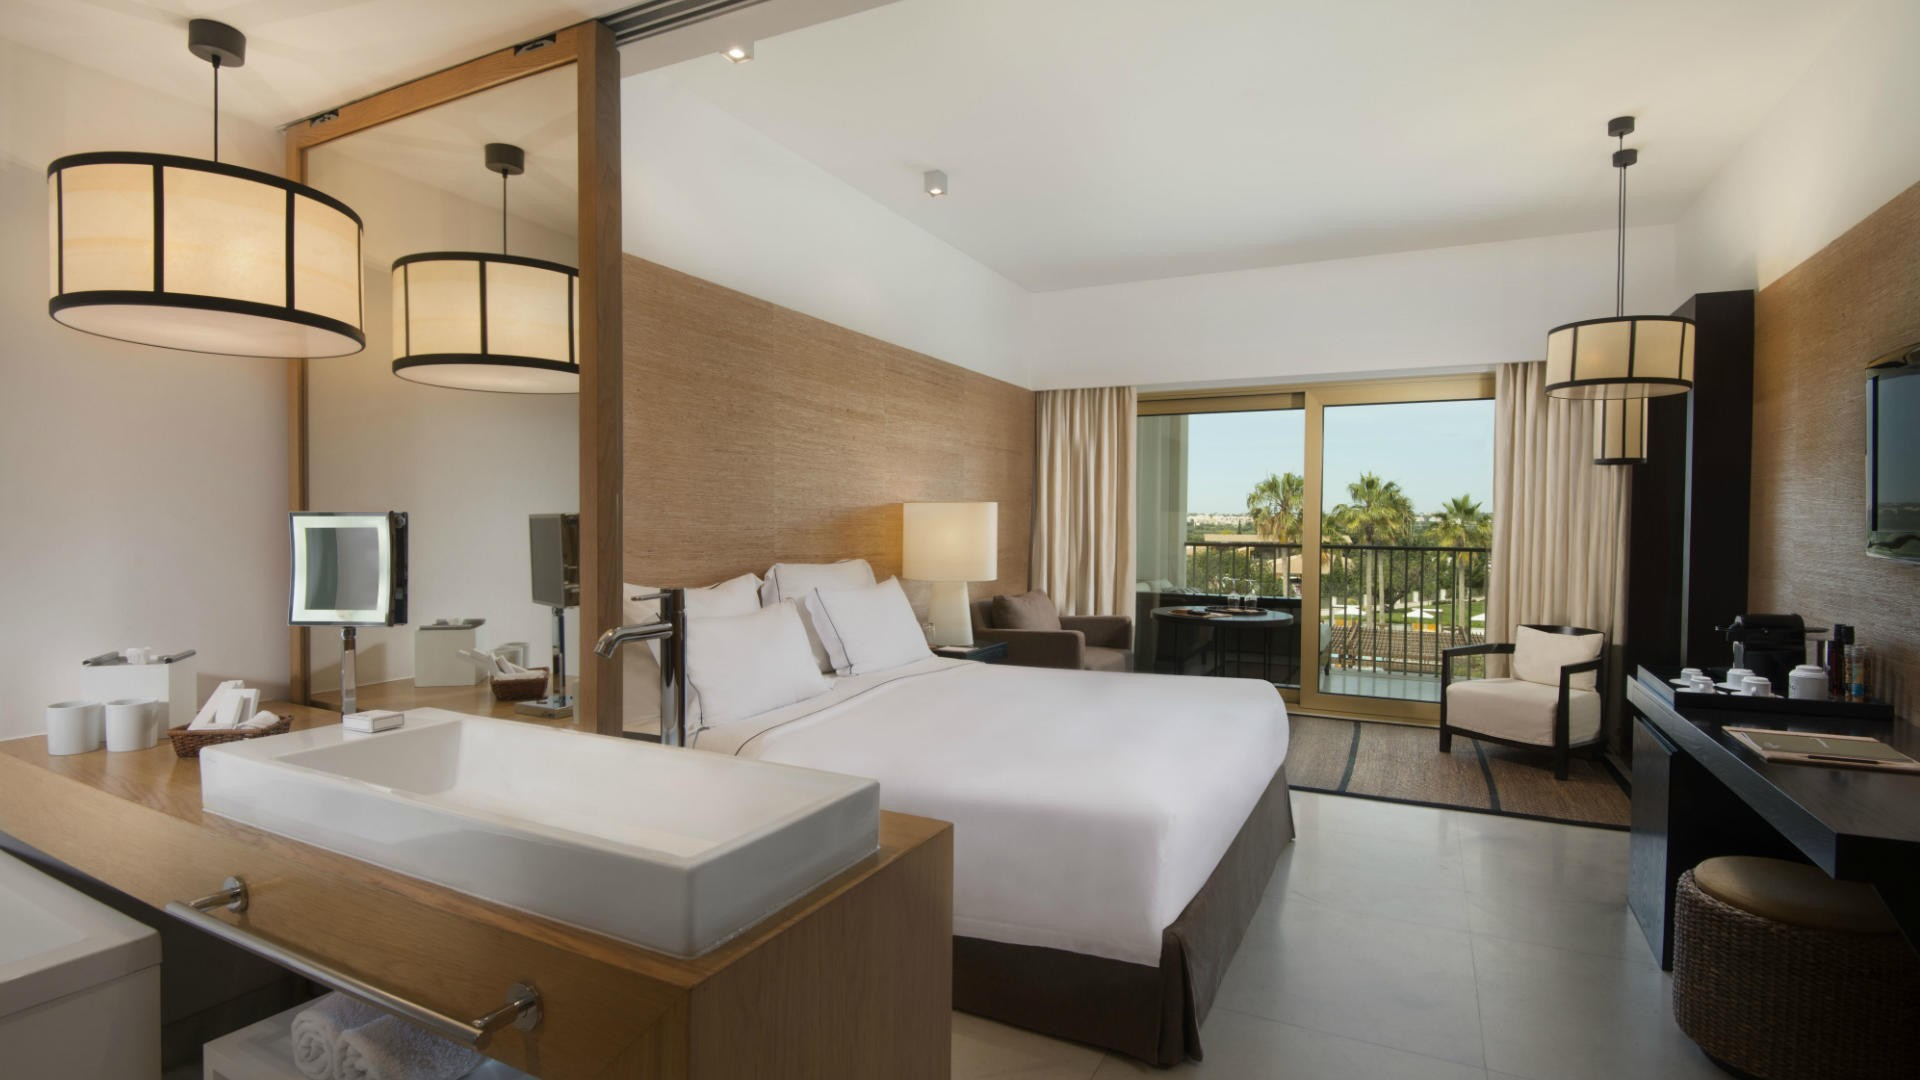 Anantara Vilamoura anantara spa Anantara SPA is one of the most luxurious spas in the world Anantara Vilamoura 6